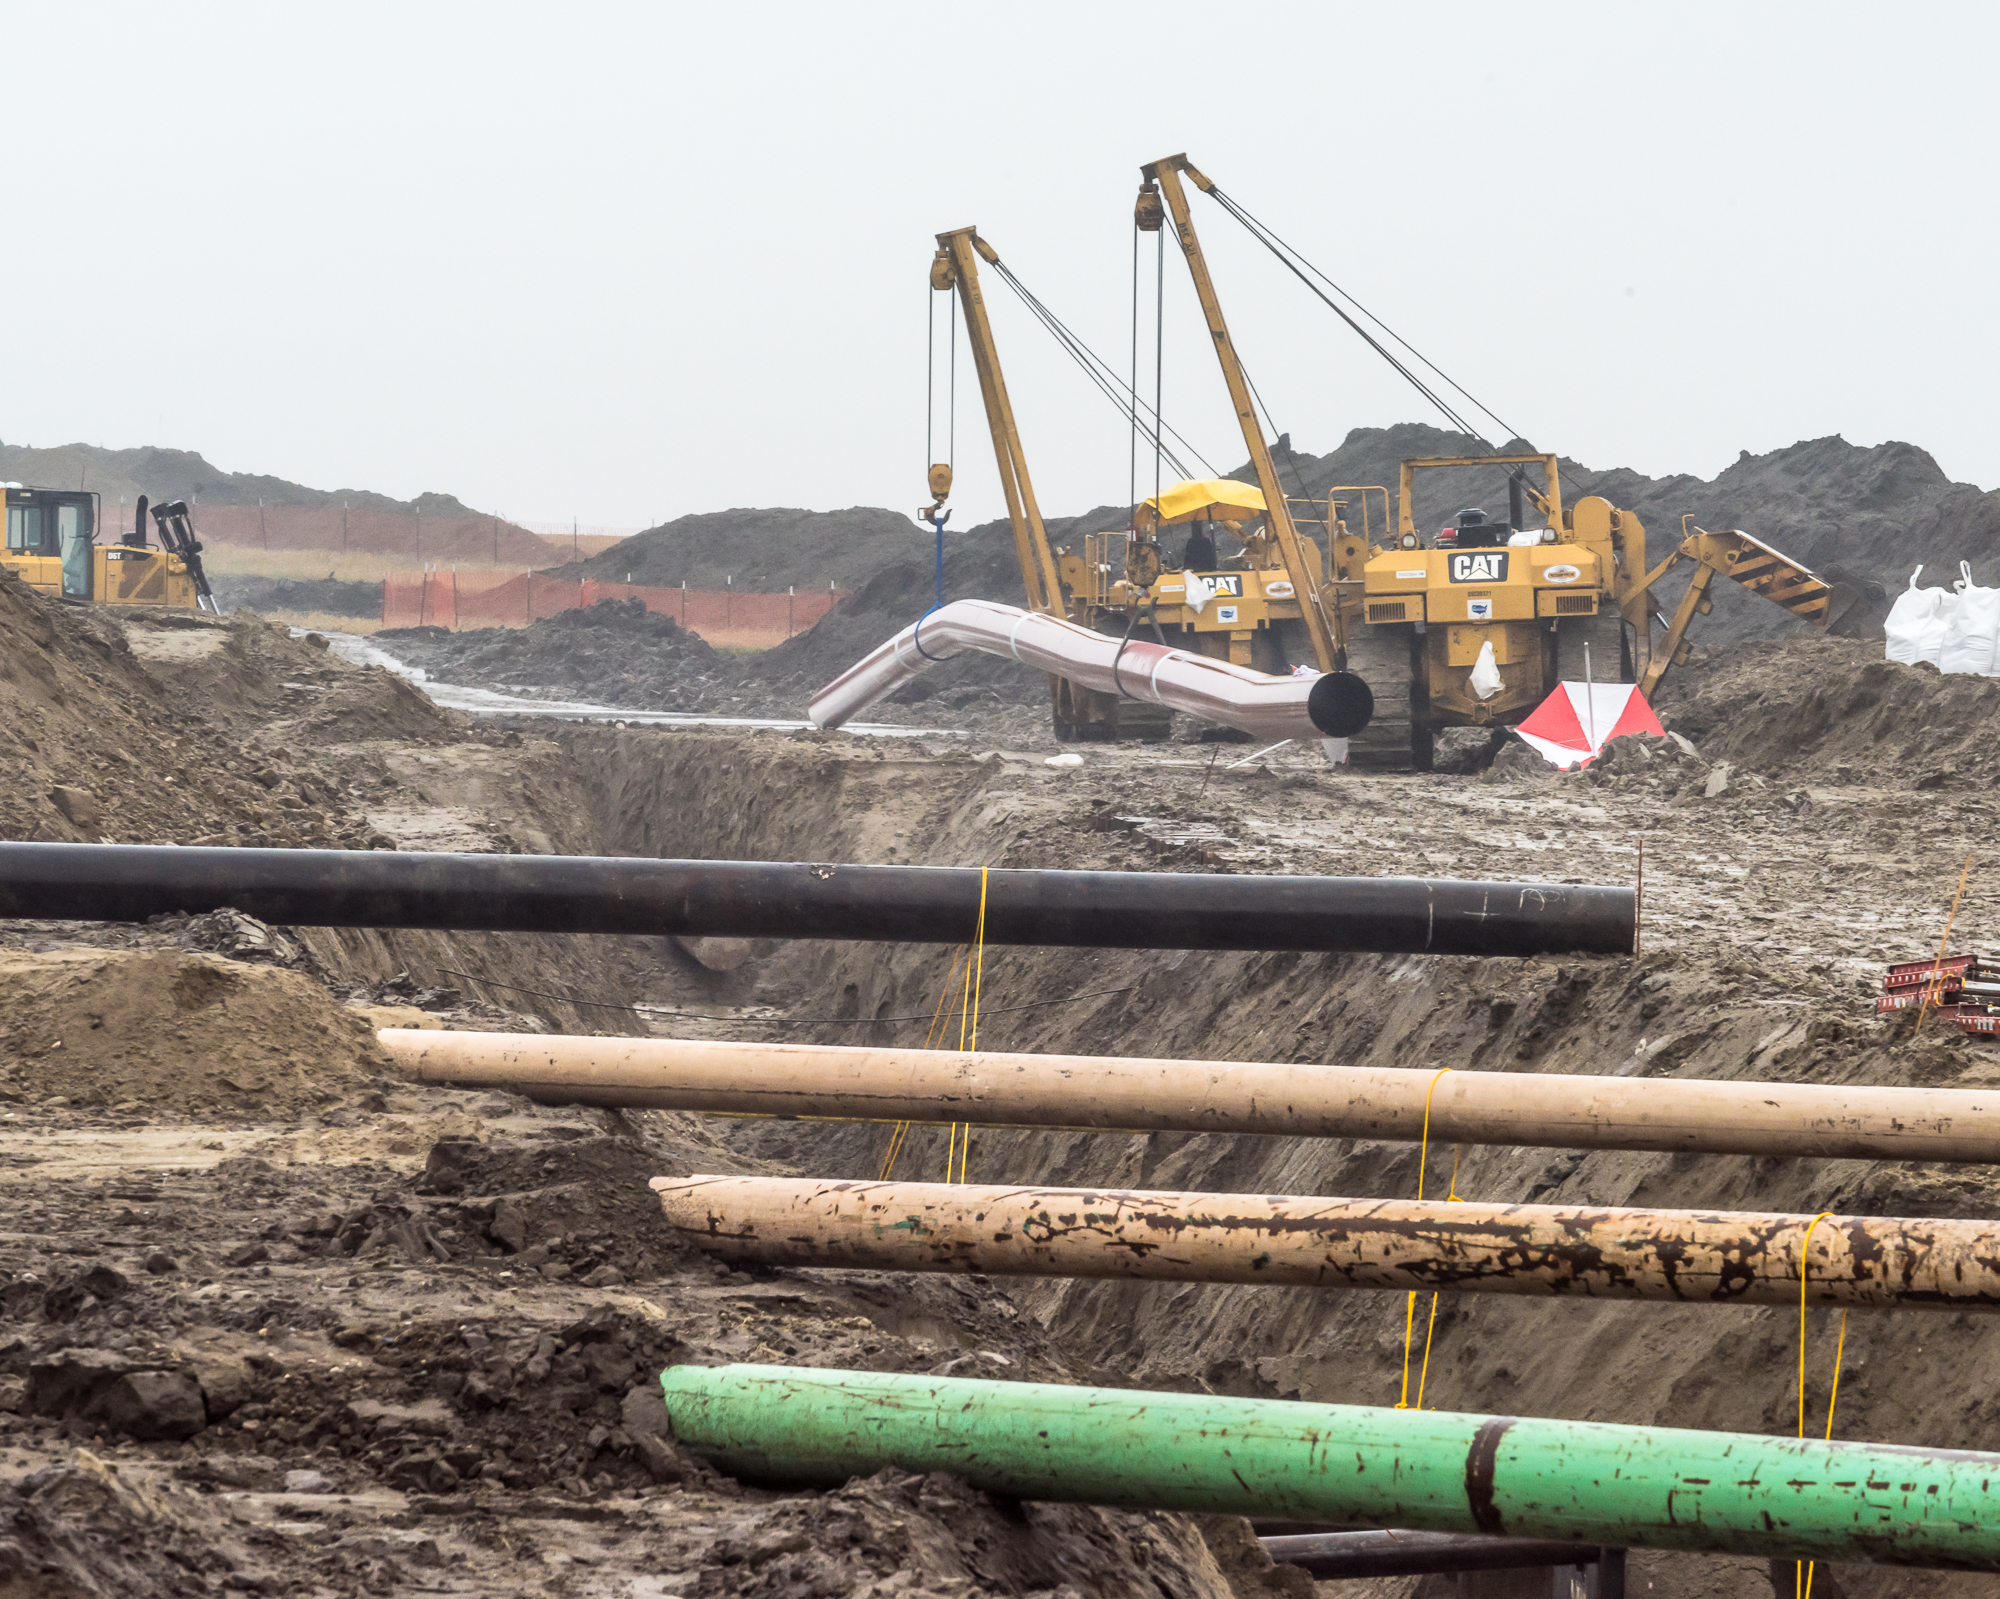 Oil rigs in a field with uncovered pipes, part of a green new deal studio